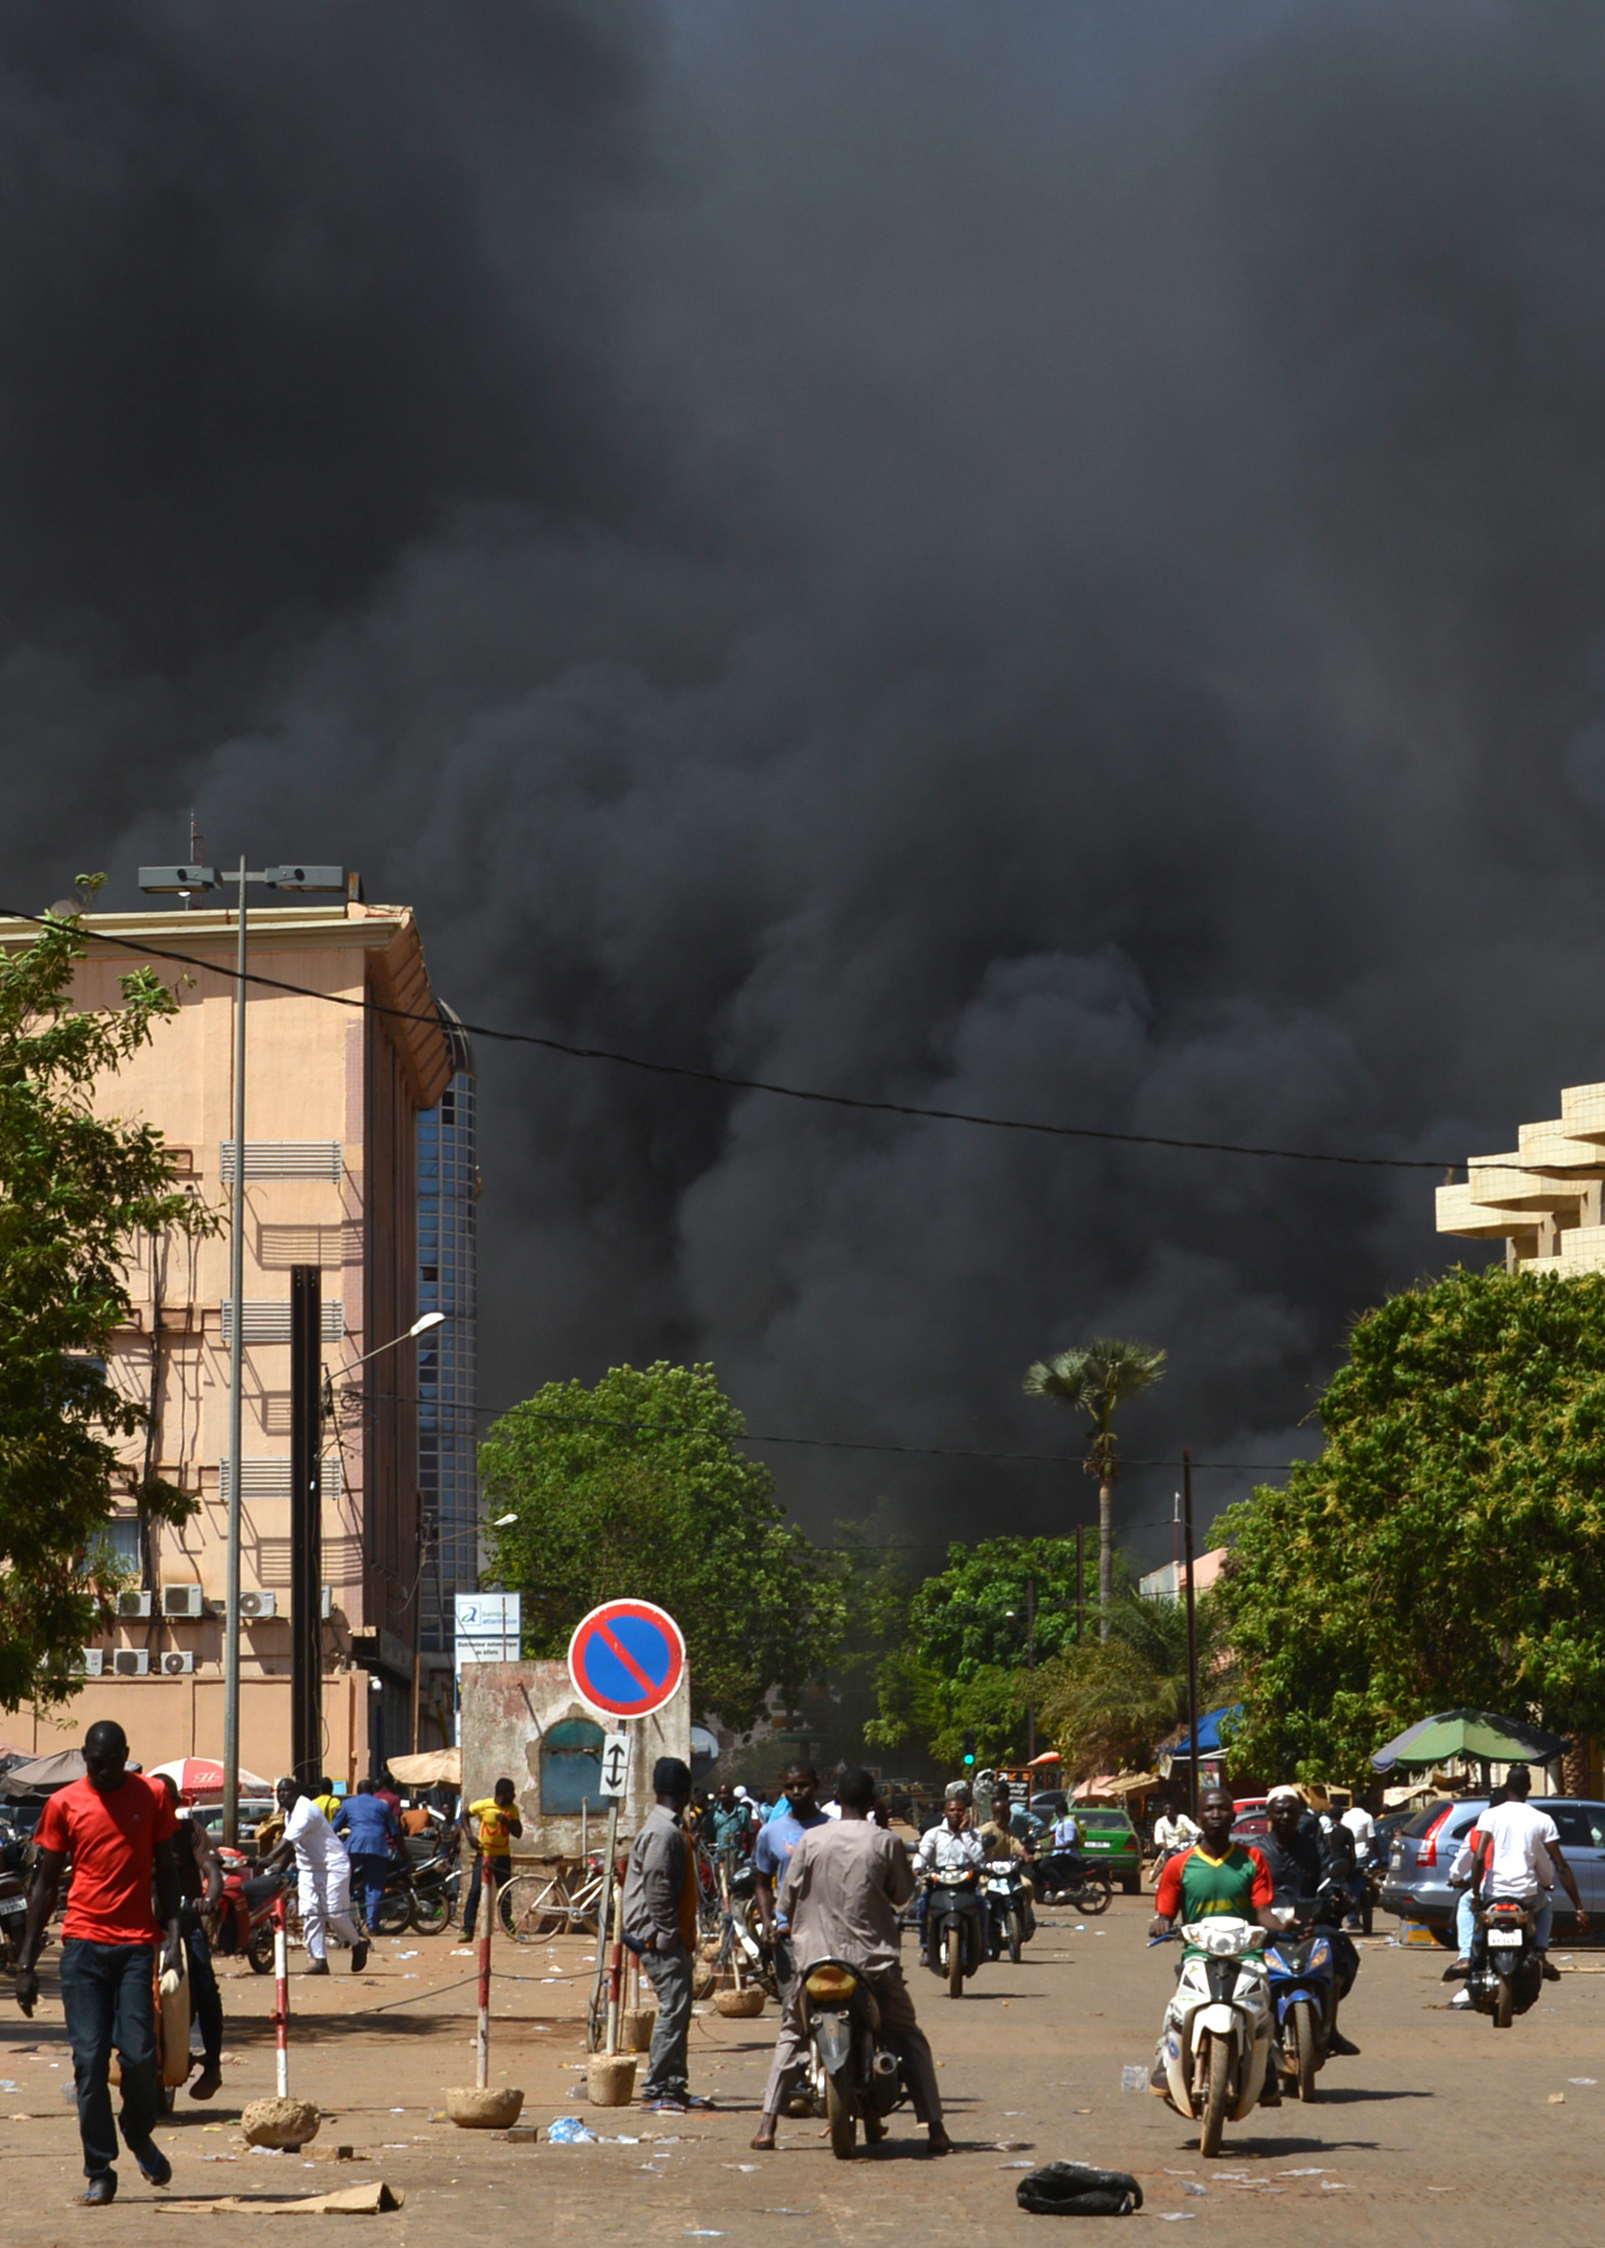 People watch as black smoke rises as the capital of Burkina Faso came under multiple attacks on March 2, 2018, targeting the French embassy, the French cultural centre and the country's military headquarters. Witnesses said five armed men got out of a car and opened fire on passersby before heading towards the embassy, in the centre of the city. Other witnesses said there was an explosion near the headquarters of the Burkinabe armed forces and the French cultural centre, which are located about a kilometre (half a mile) from the site of the first attack. AHMED OUOBA/AFP/Getty Images